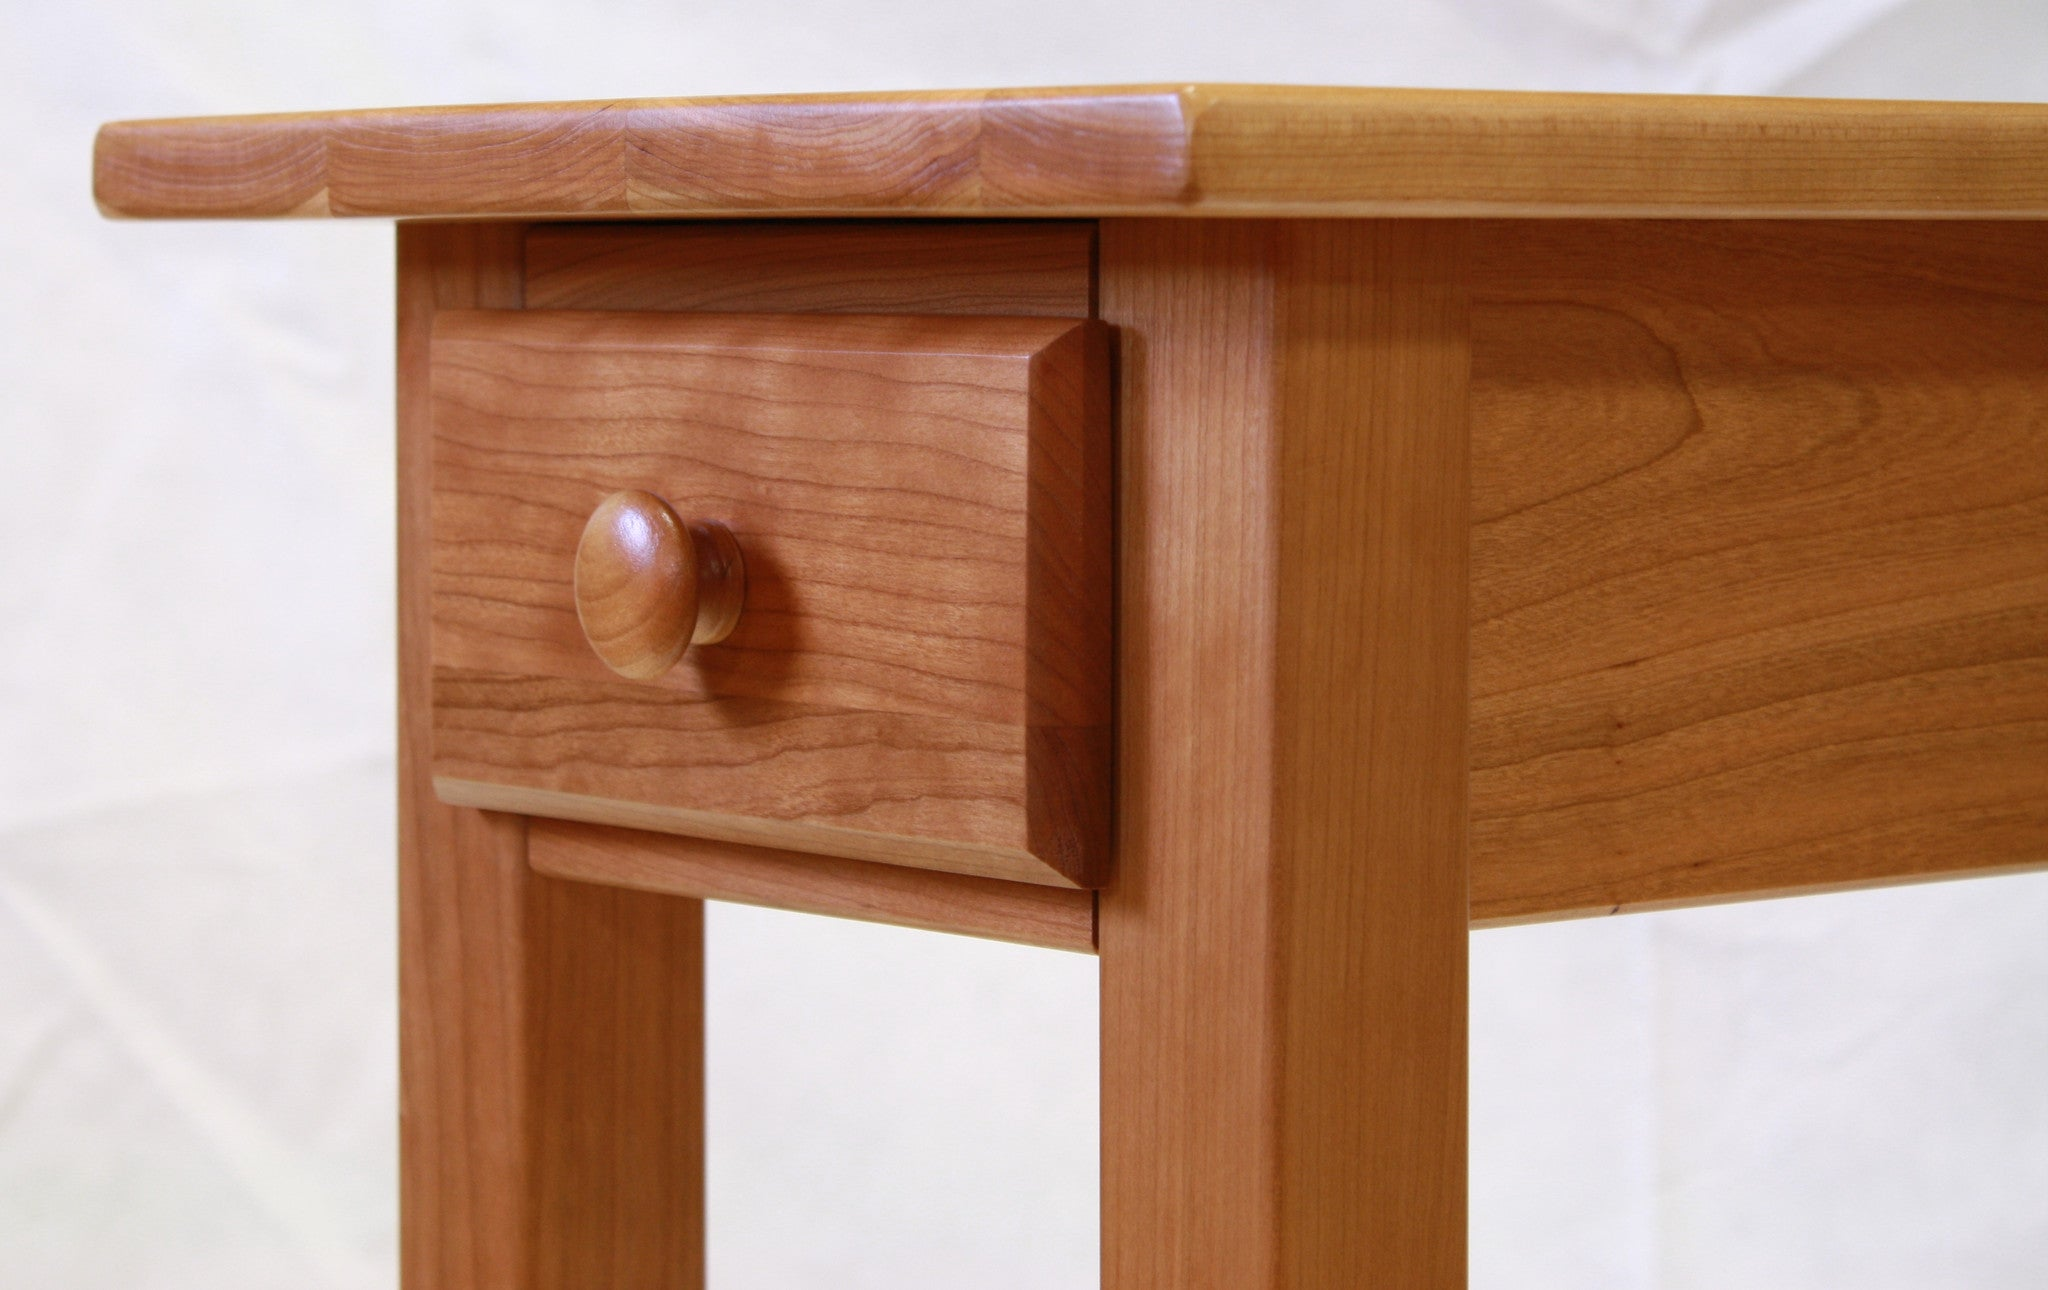 ... Narrow Cherry Shaker Chairside End Table With Drawer, , Occasional  Tables   Endicott Home Furnishings